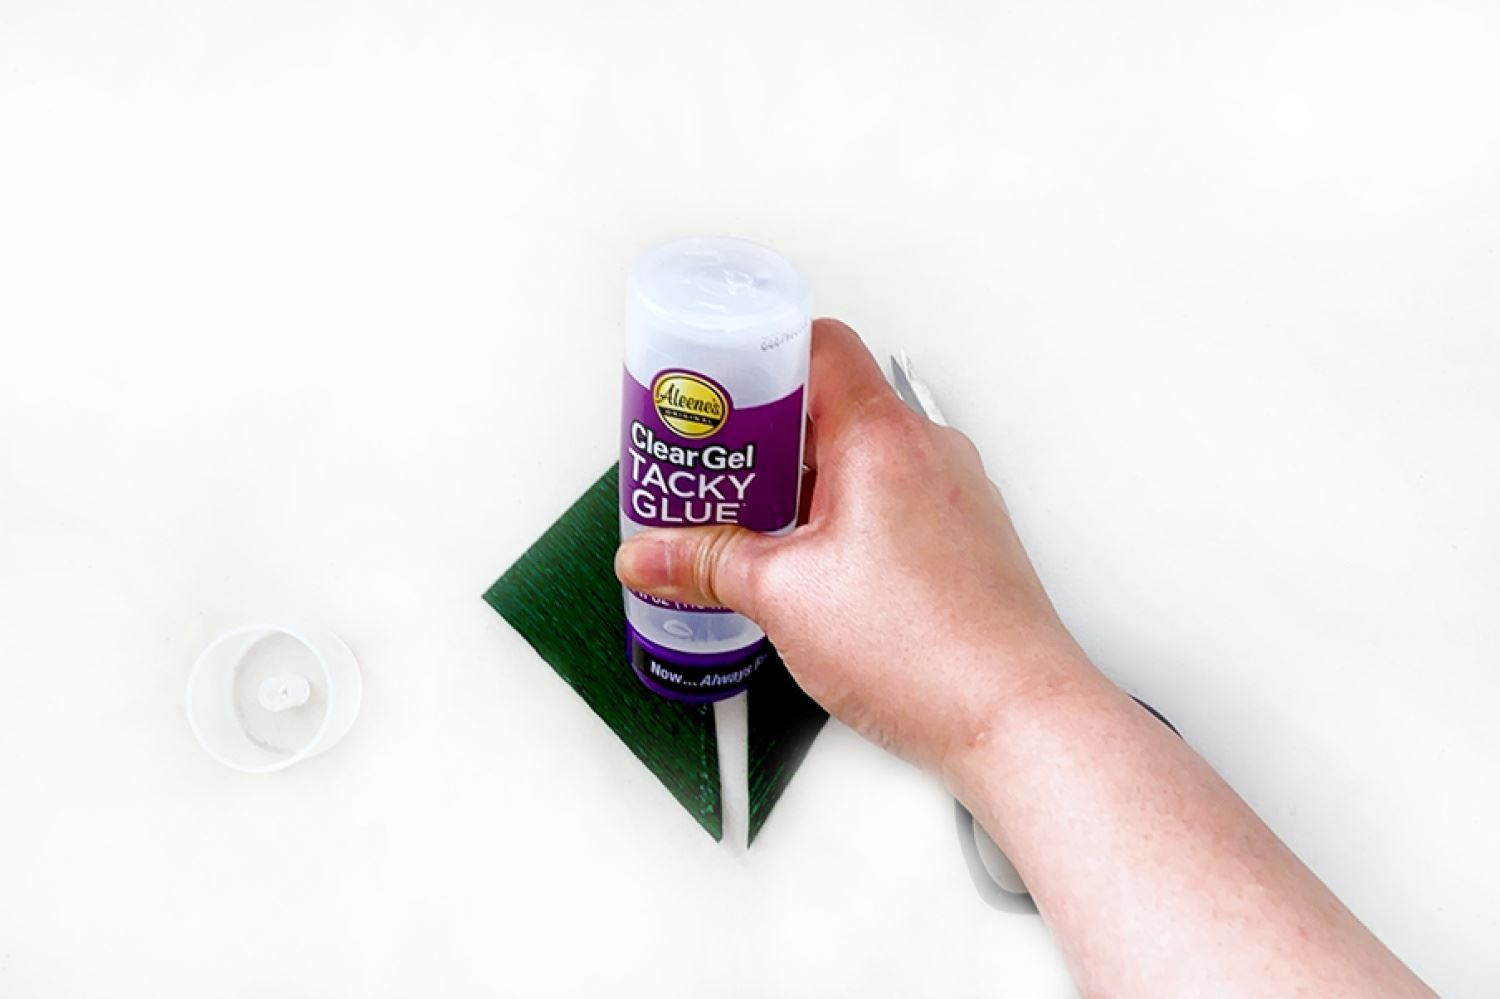 Flip one half over and add glue to edge